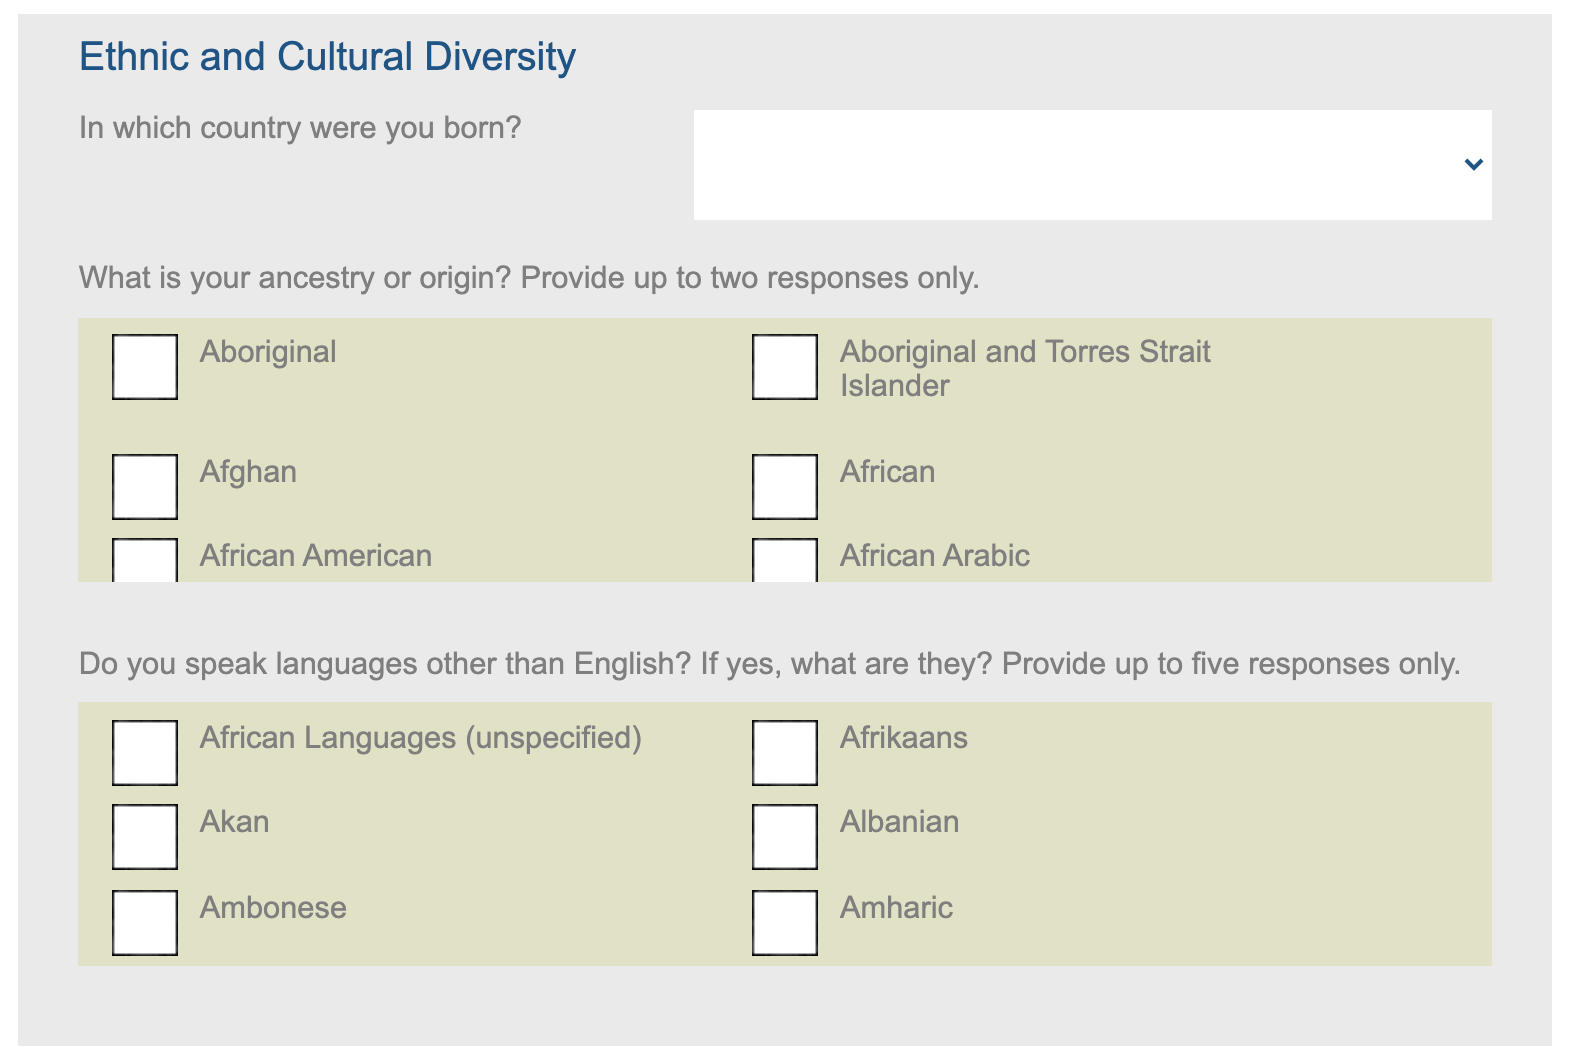 Ethnic and cultural diversity questions